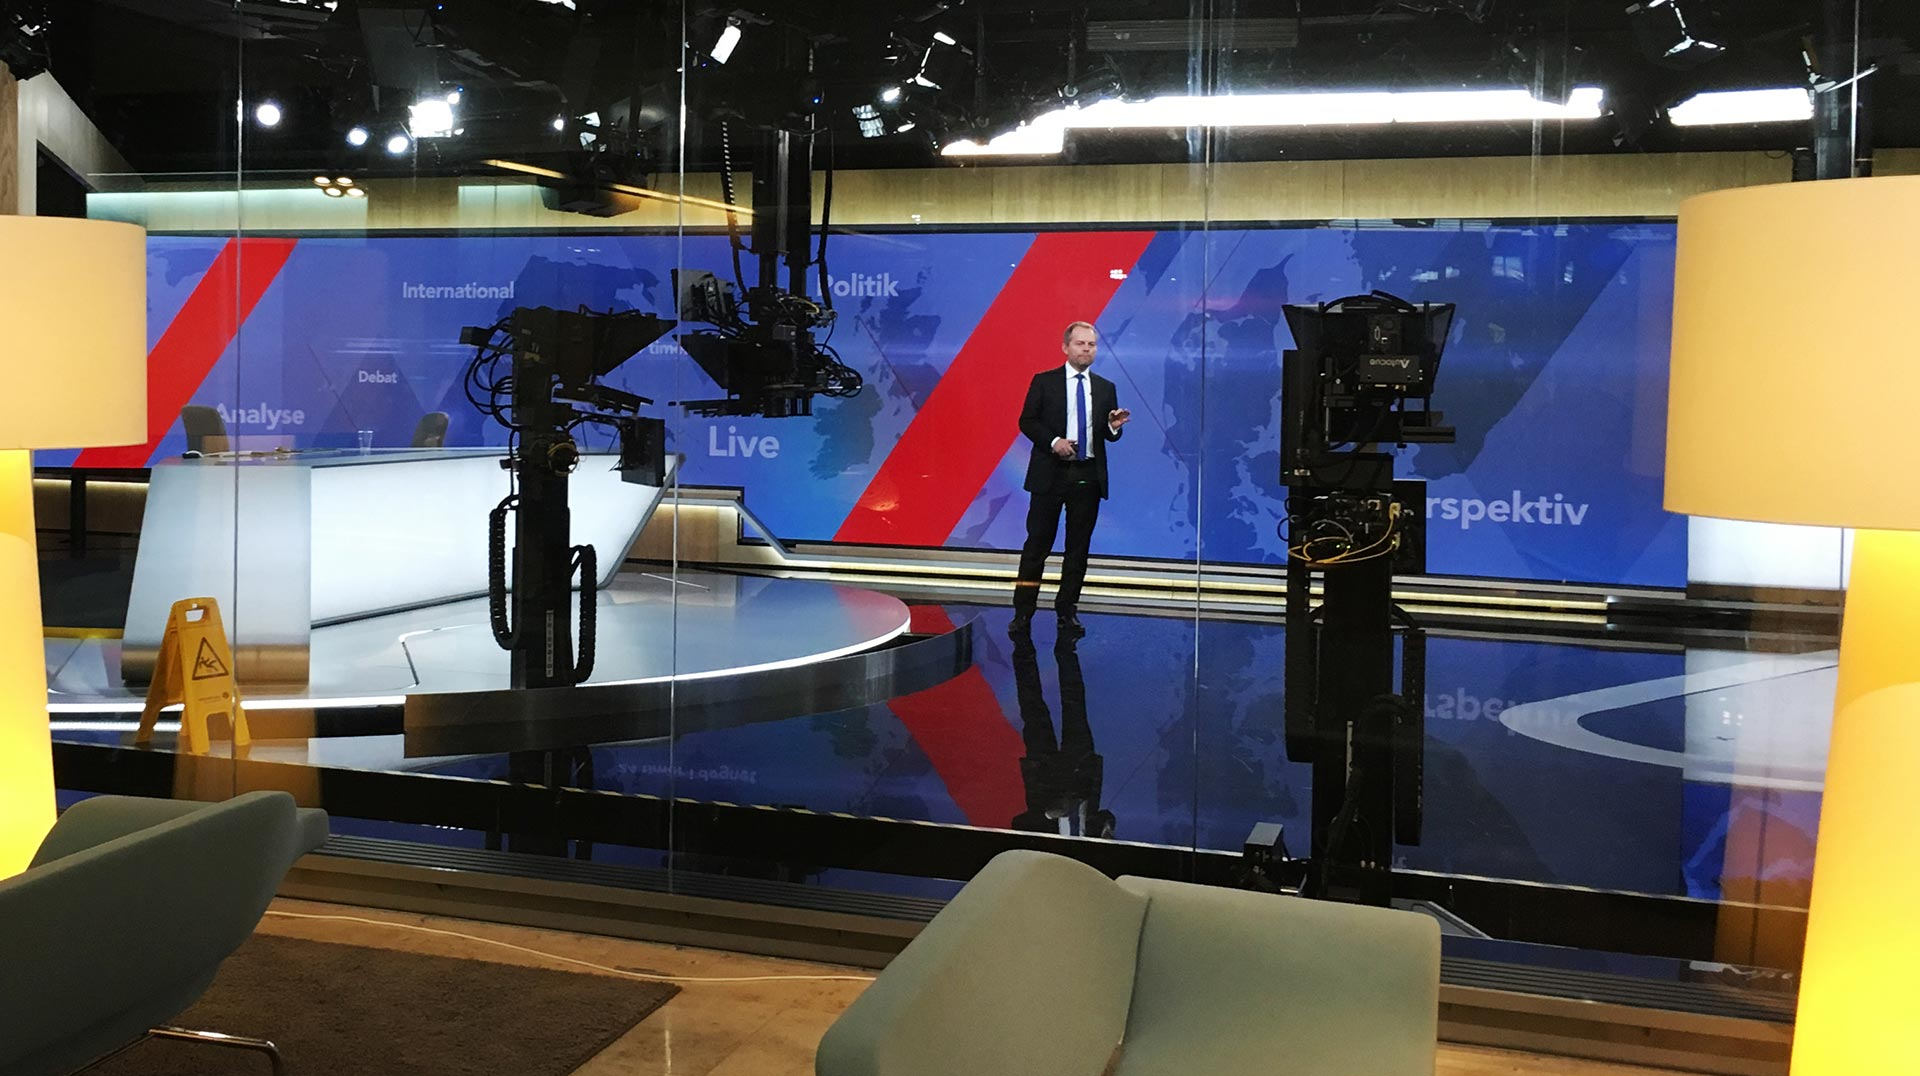 TV2_News_Kbh